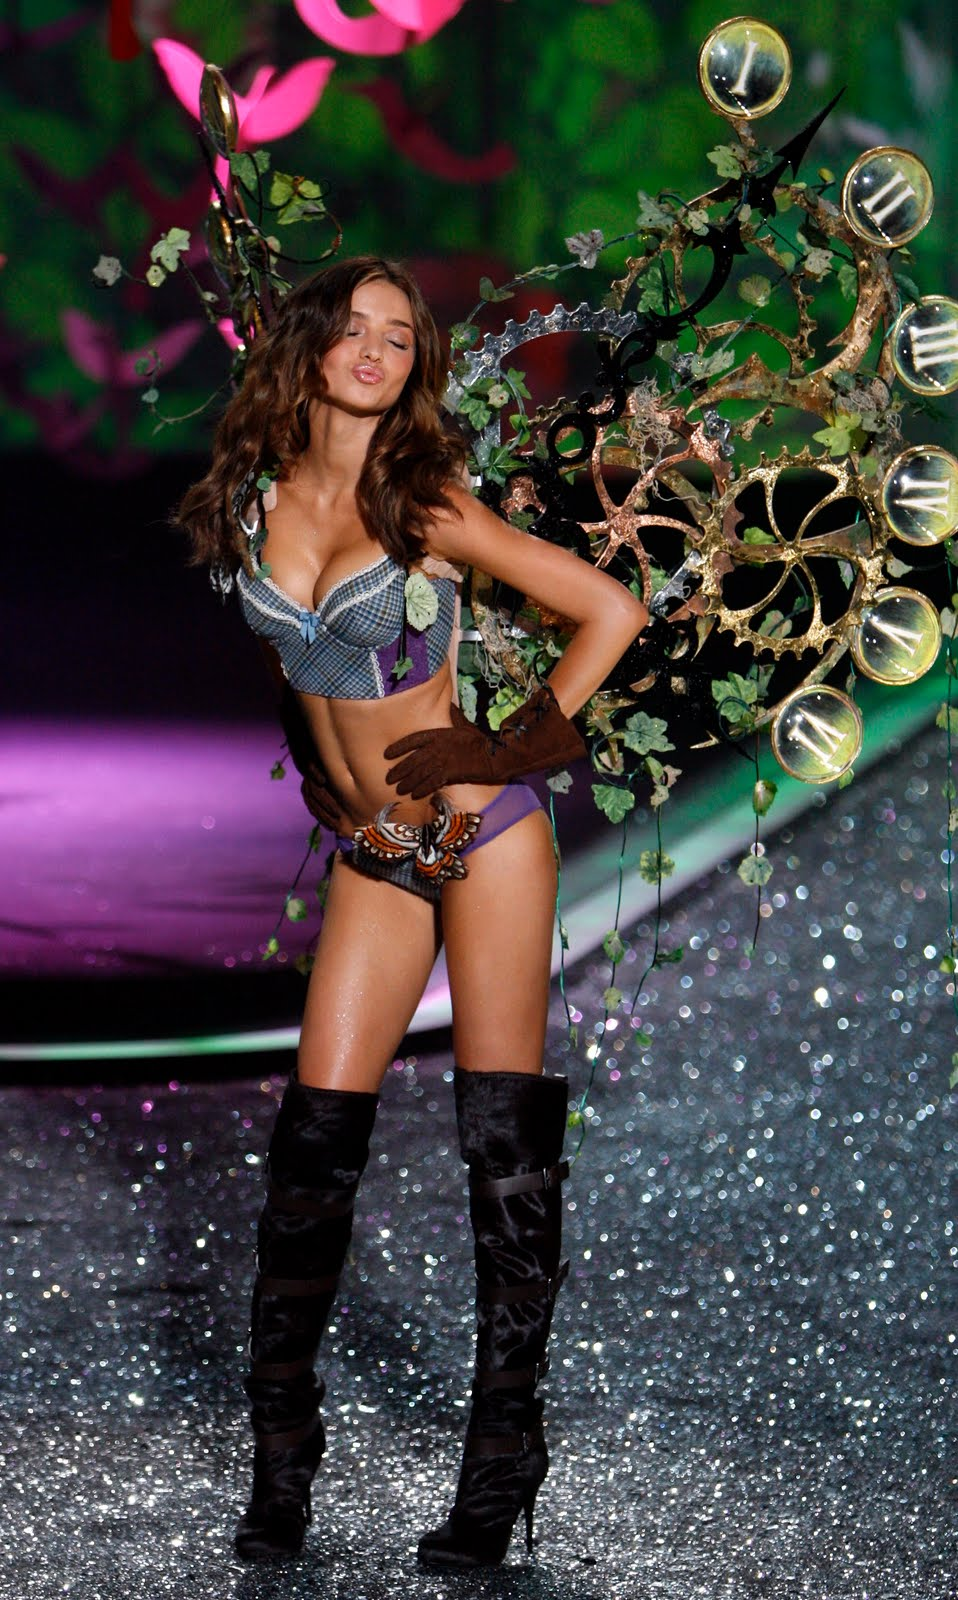 Victoria 39 S Secret Miranda Kerr Victoria 39 S Secret Fashion Show 2009